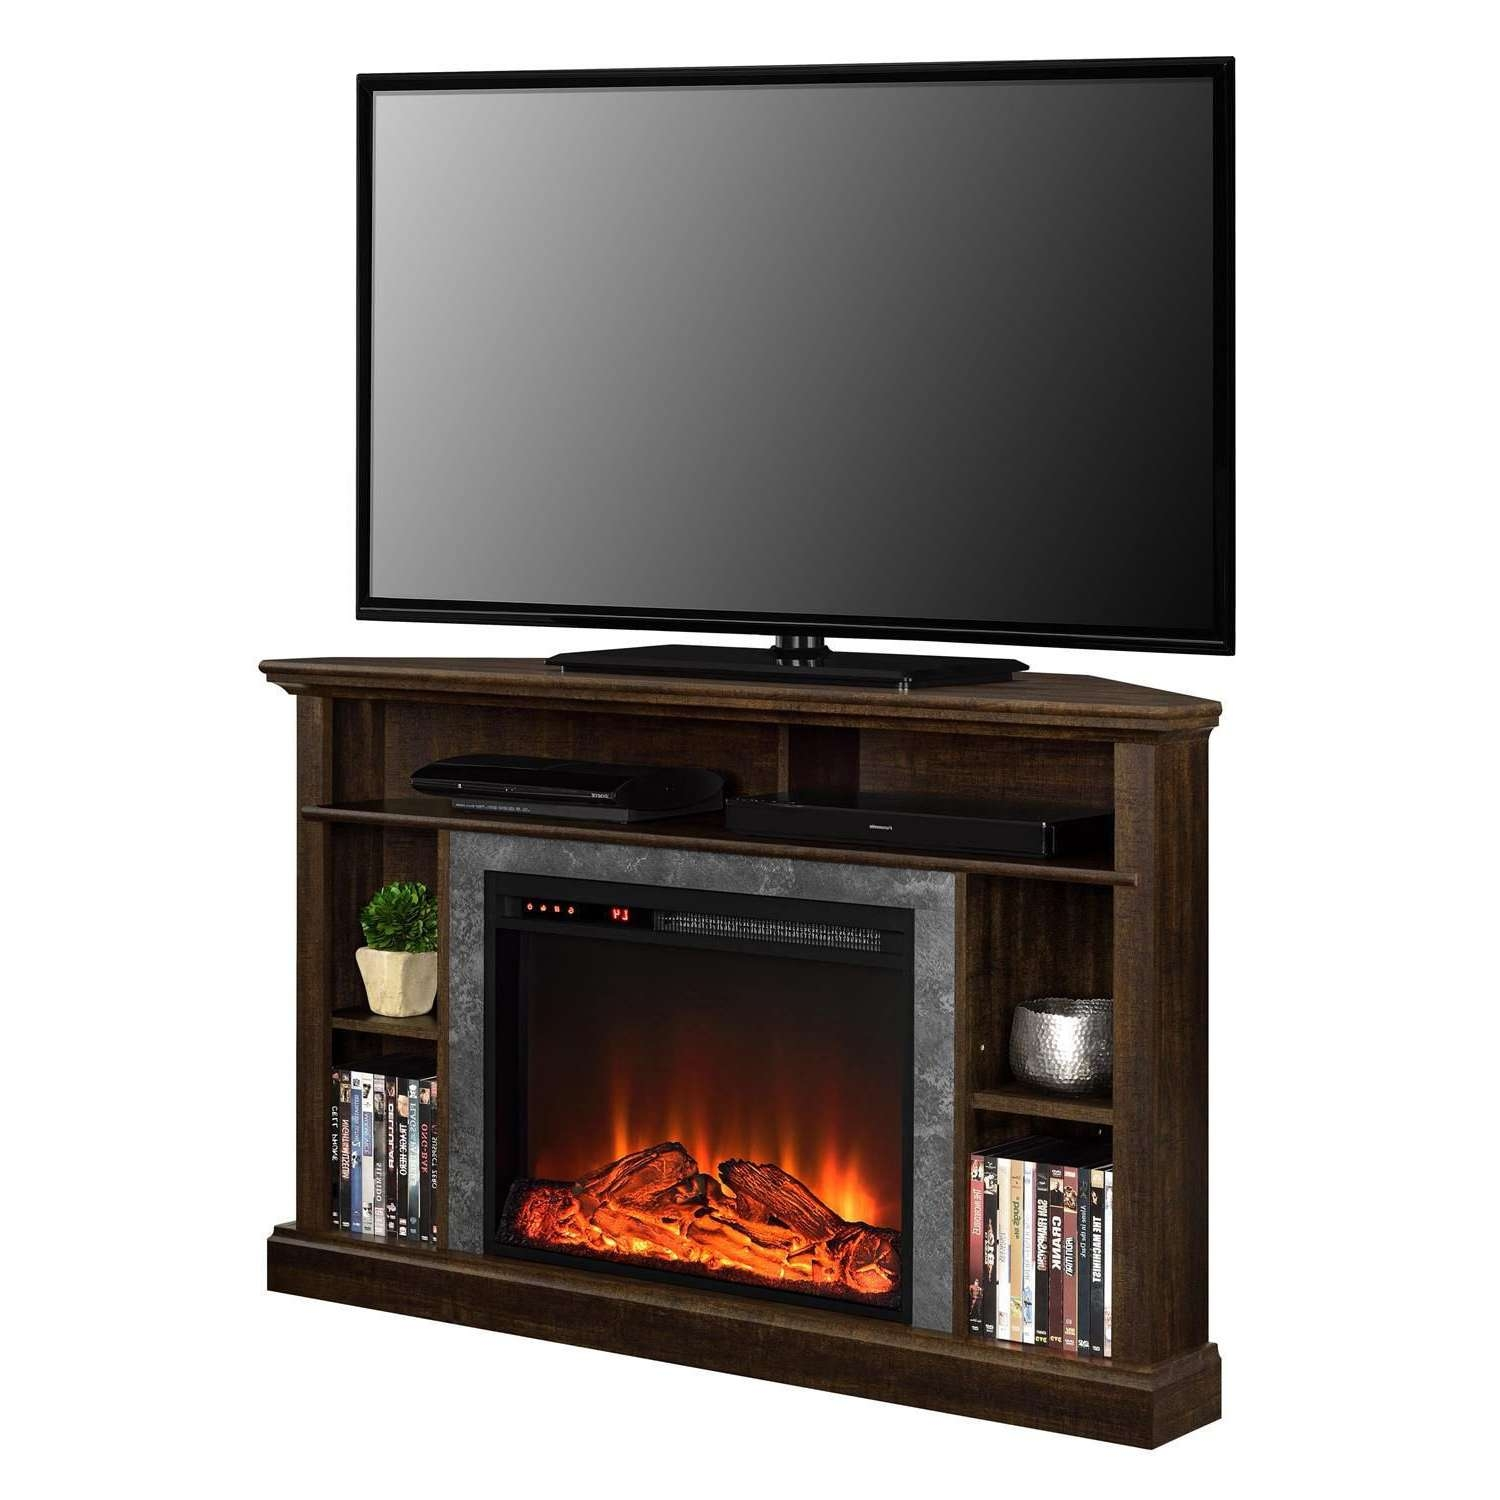 Dorel Overland Electric Fireplace Corner Tv Stand | Walmart Canada Inside Tv Stands For Corner (View 6 of 15)